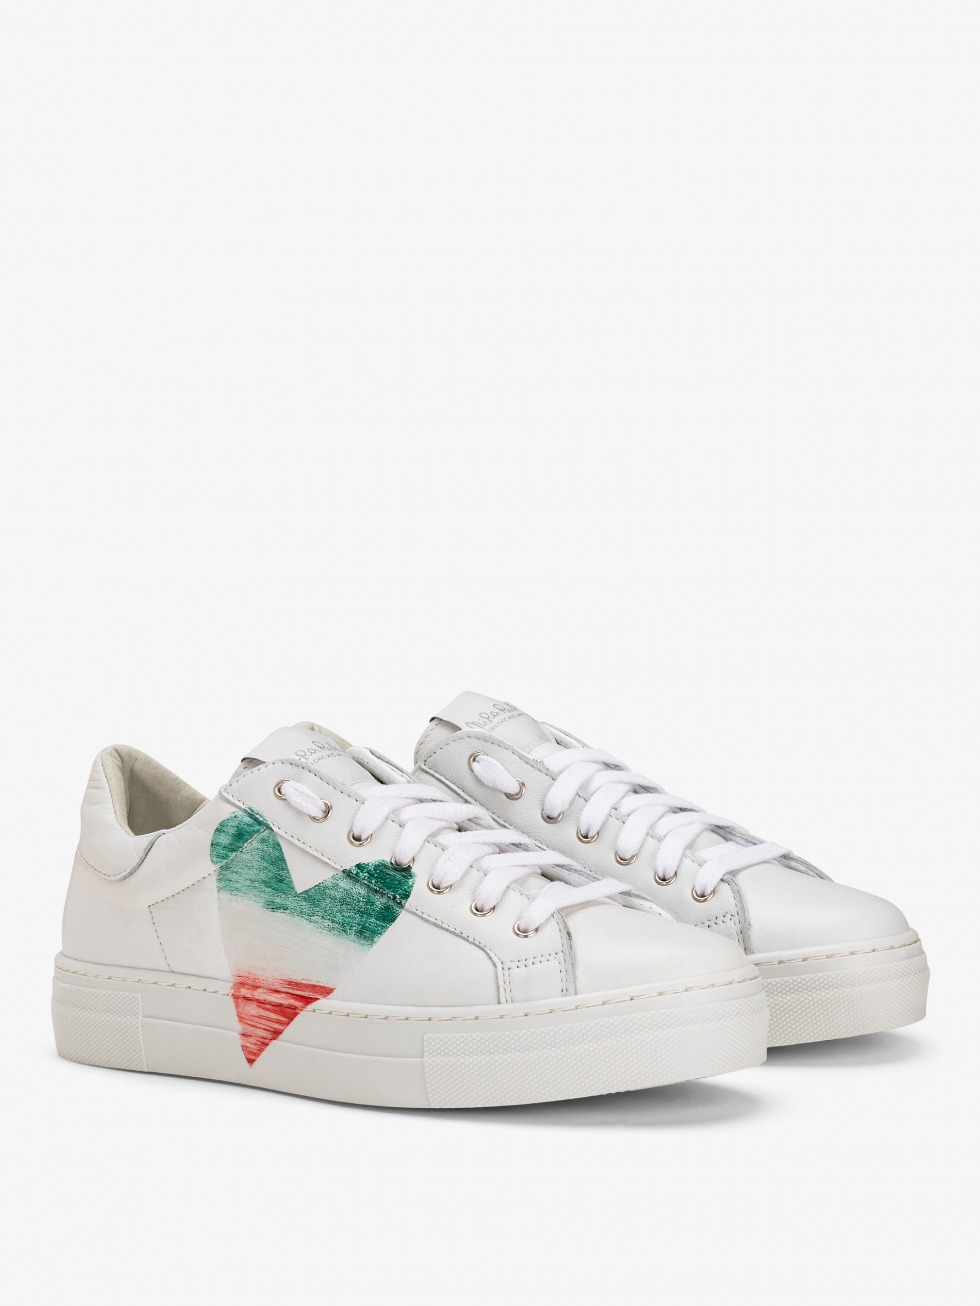 Martini Sneakers - Flag Italy Heart